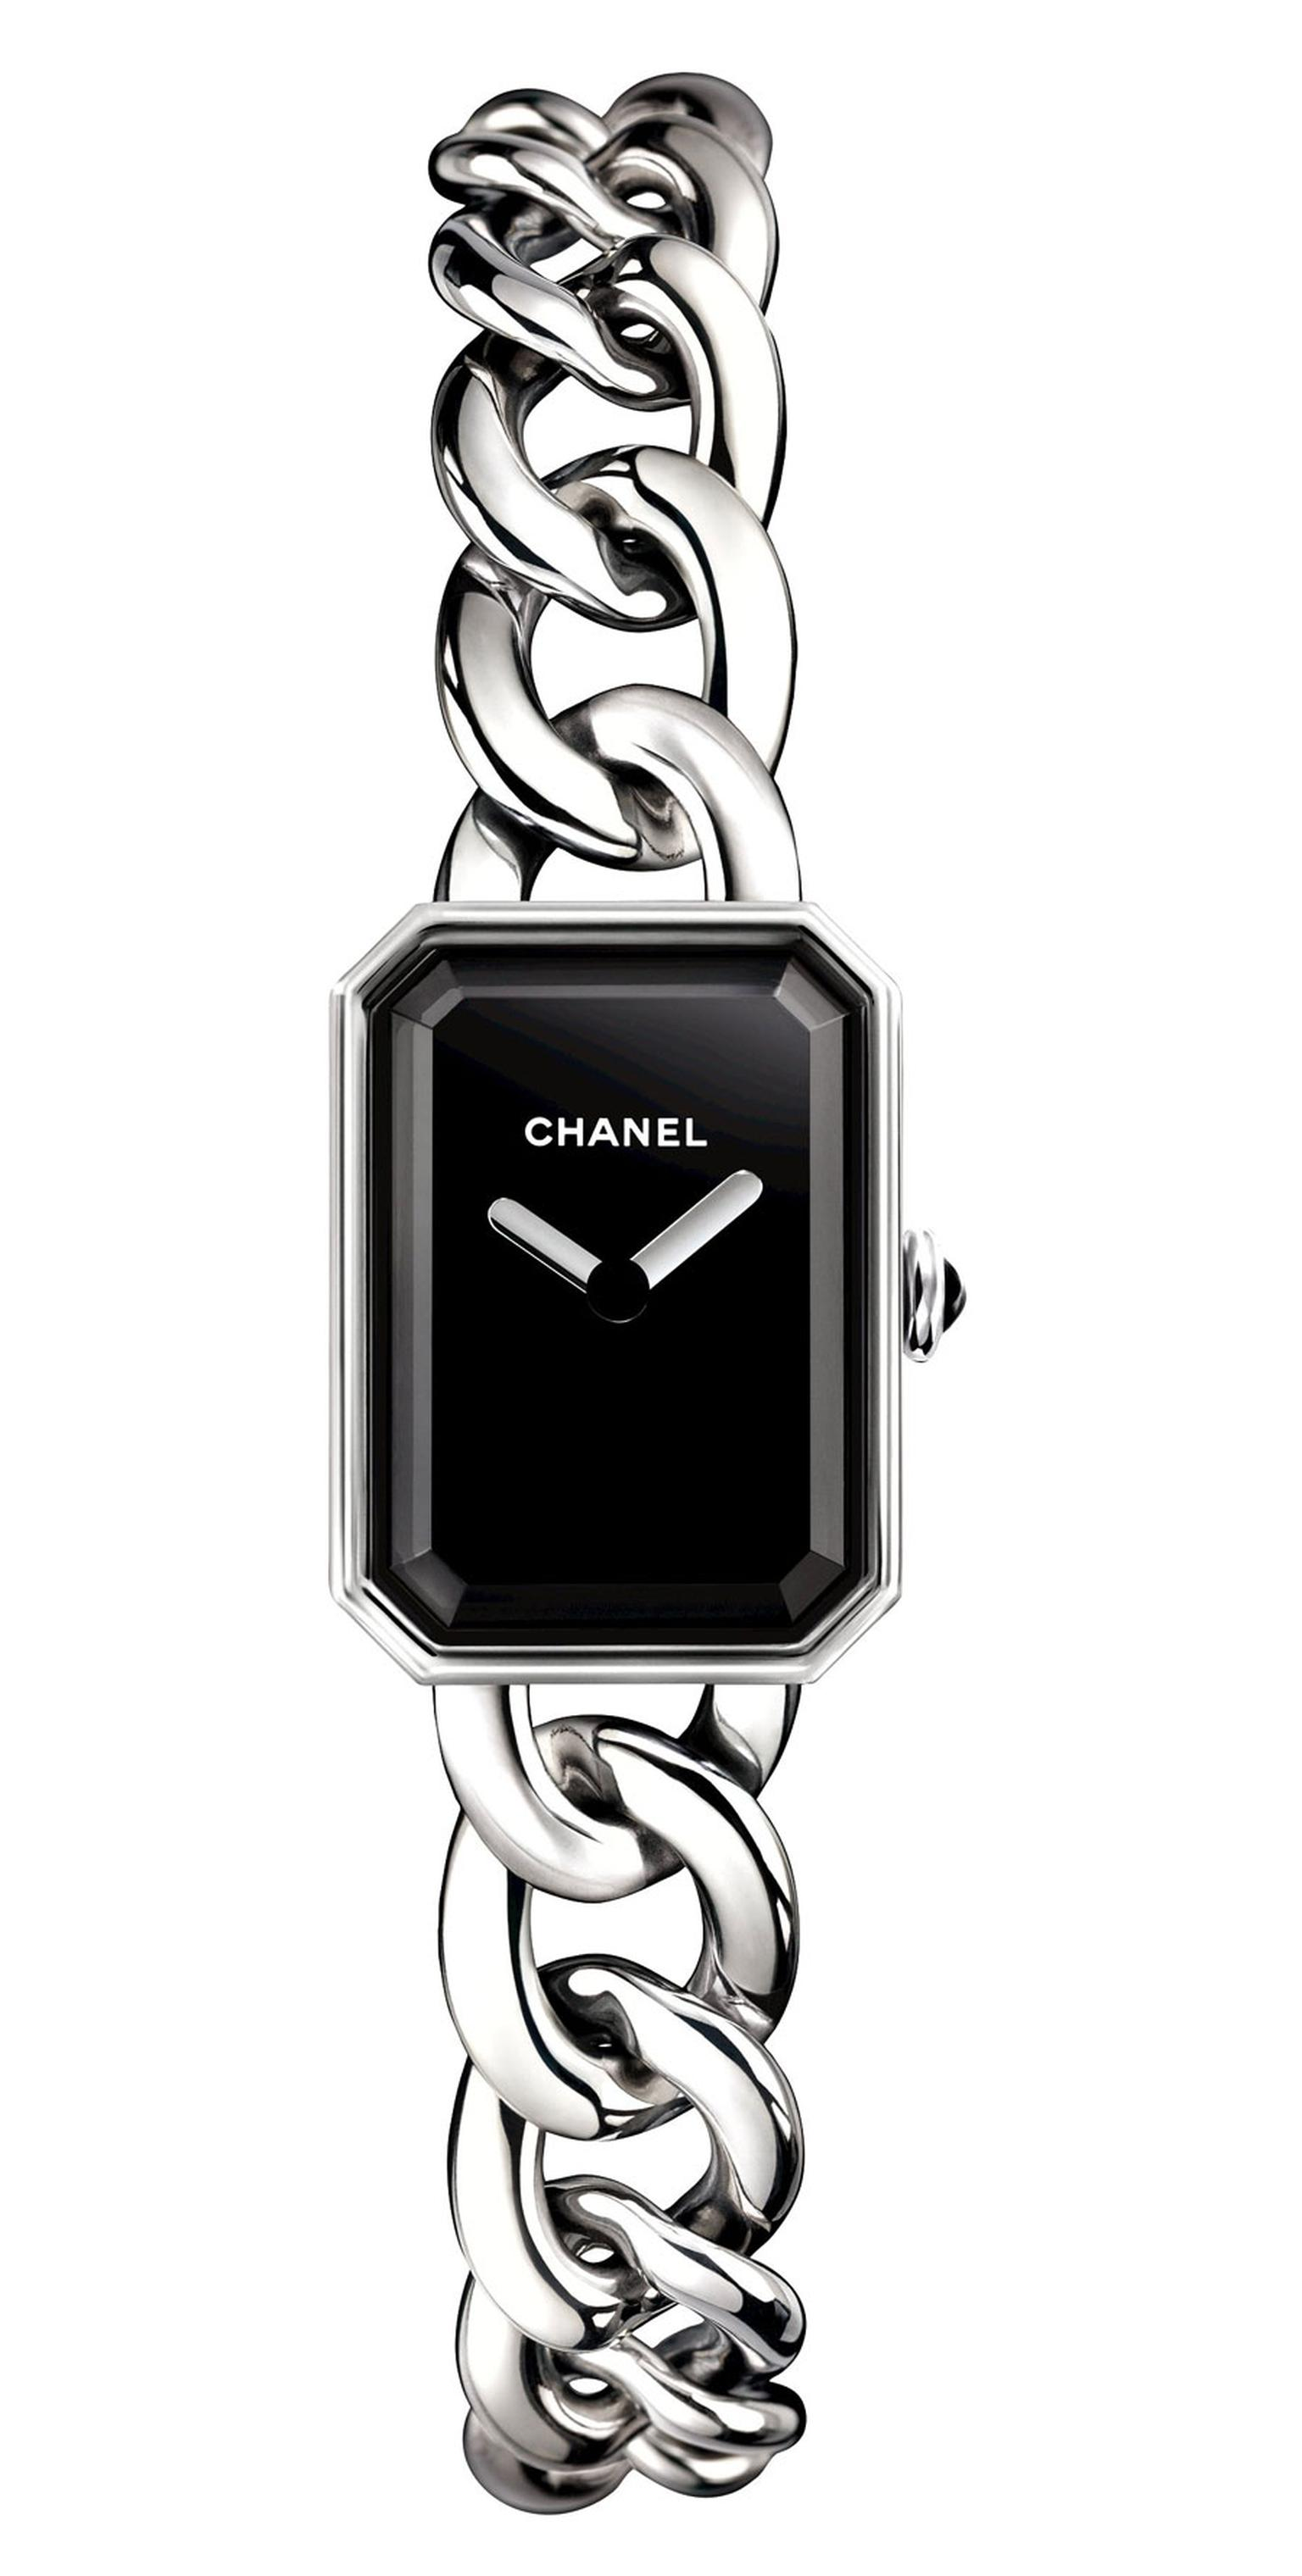 Chanel-Premiere-watch-Acier-PM-H3248.jpg